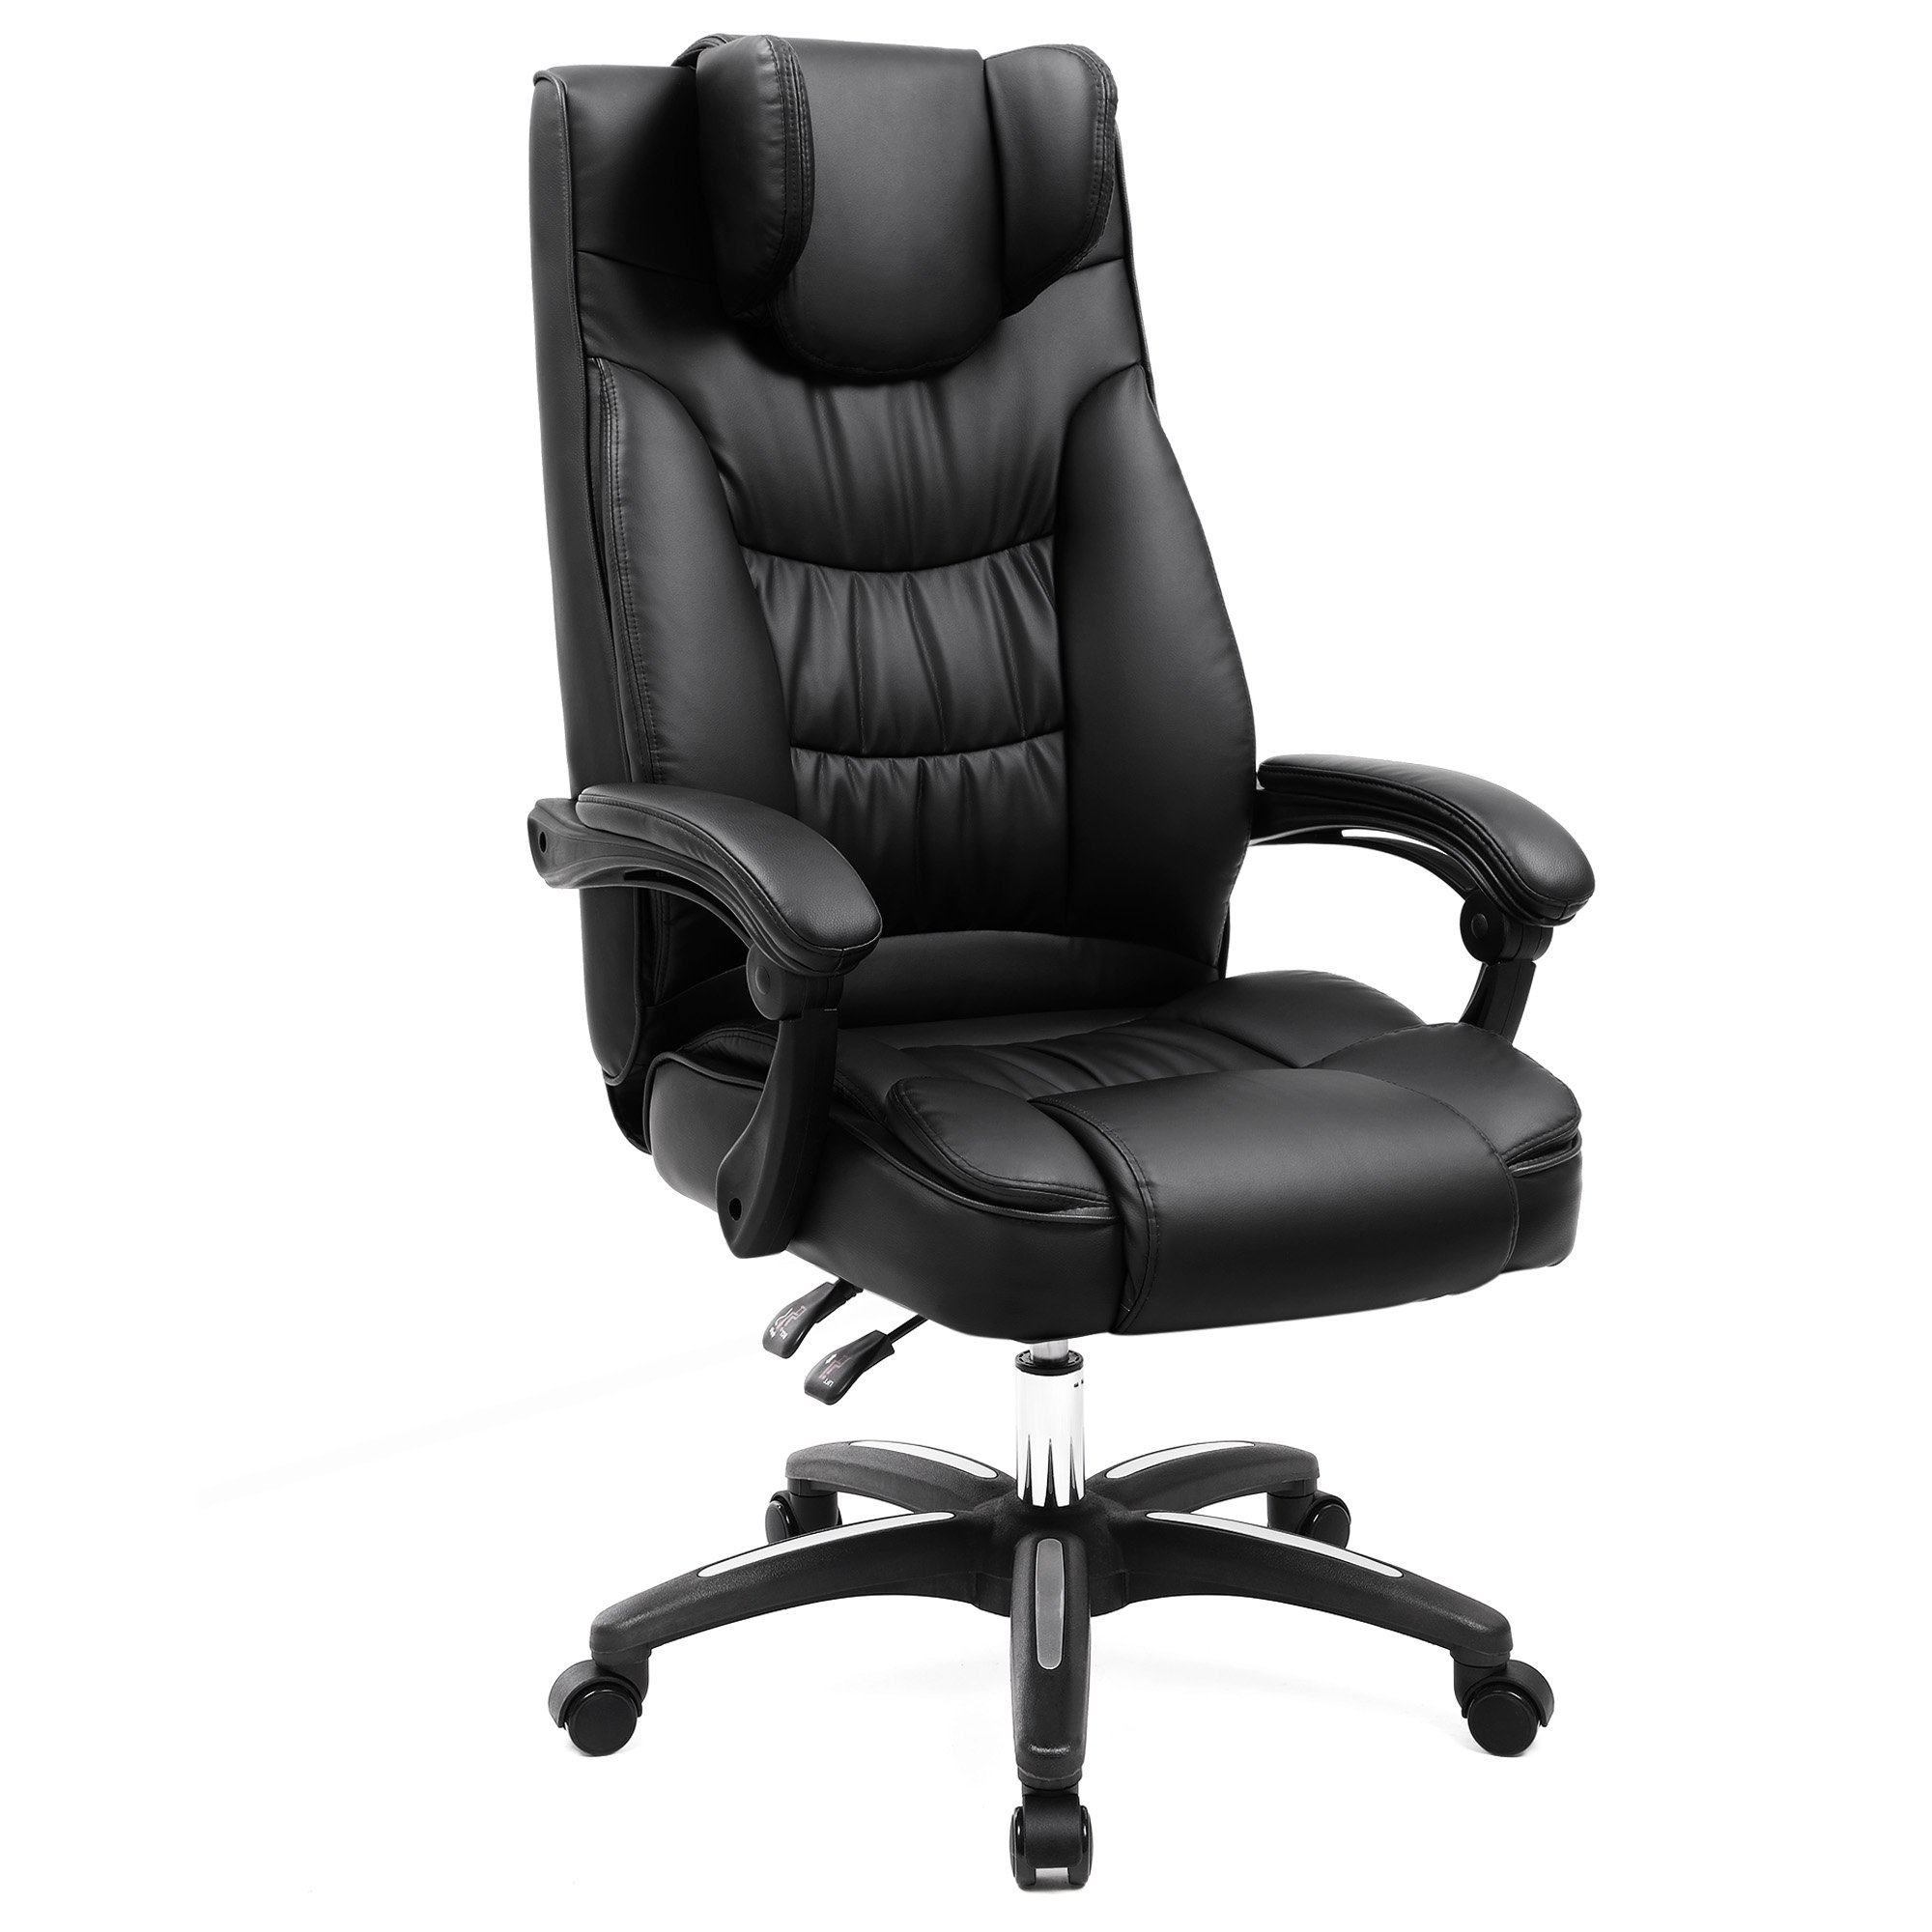 SONGMICS Office Chair, Original Design Executive Swivel Chair with Foldable Headrest, Adjustable Pillow, Black UOBG76B